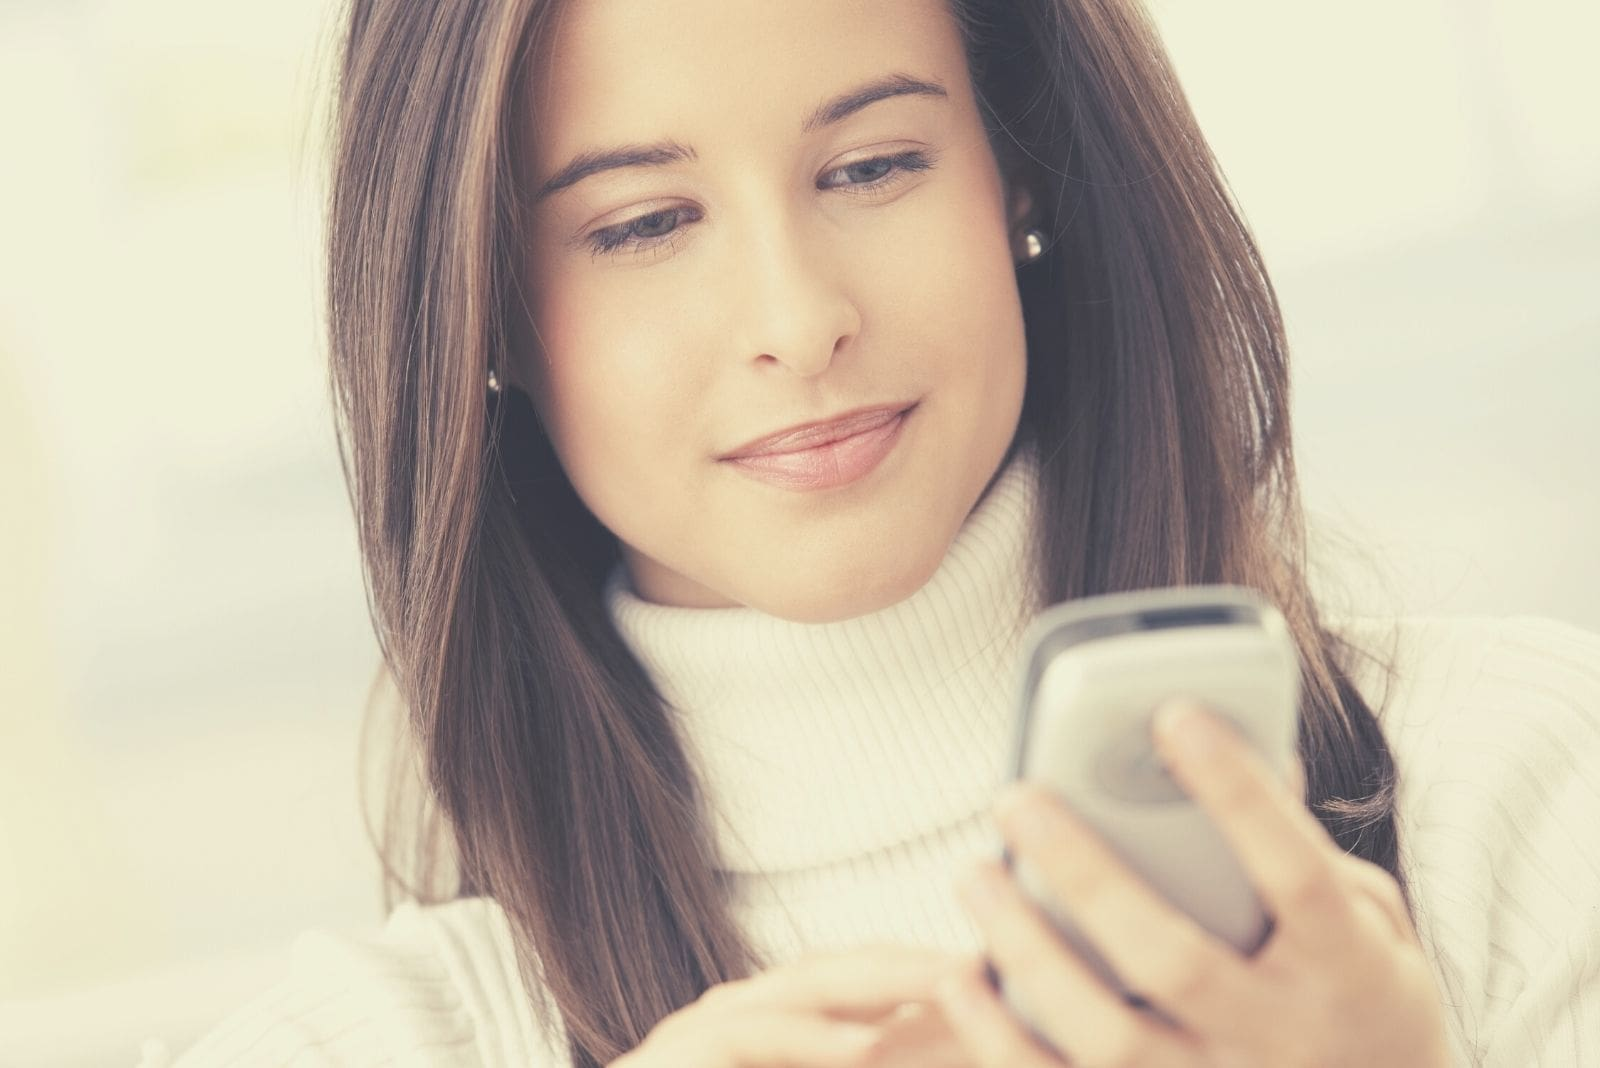 smiling woman using cellphone handheld and texting in close up photography